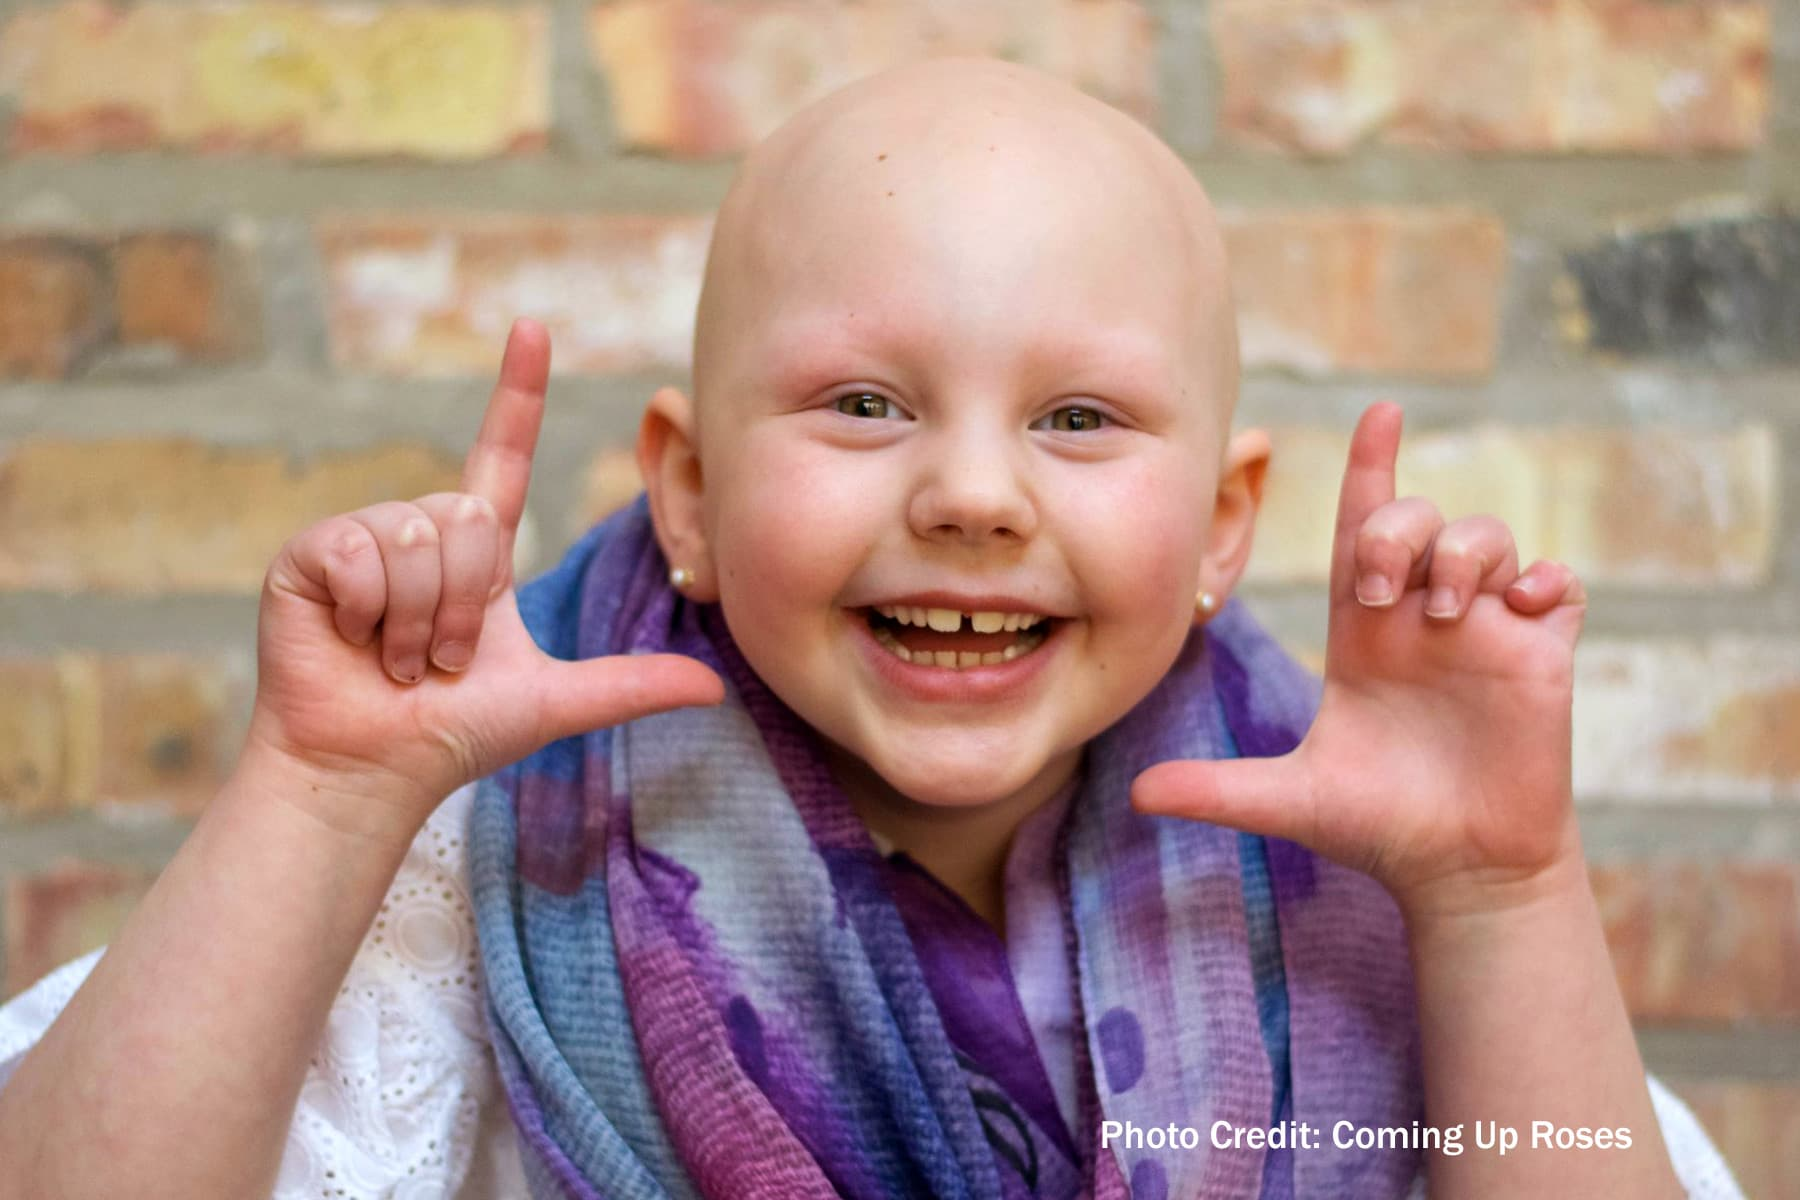 Meet Rosie: She Inspires Other Kids With Hair Loss